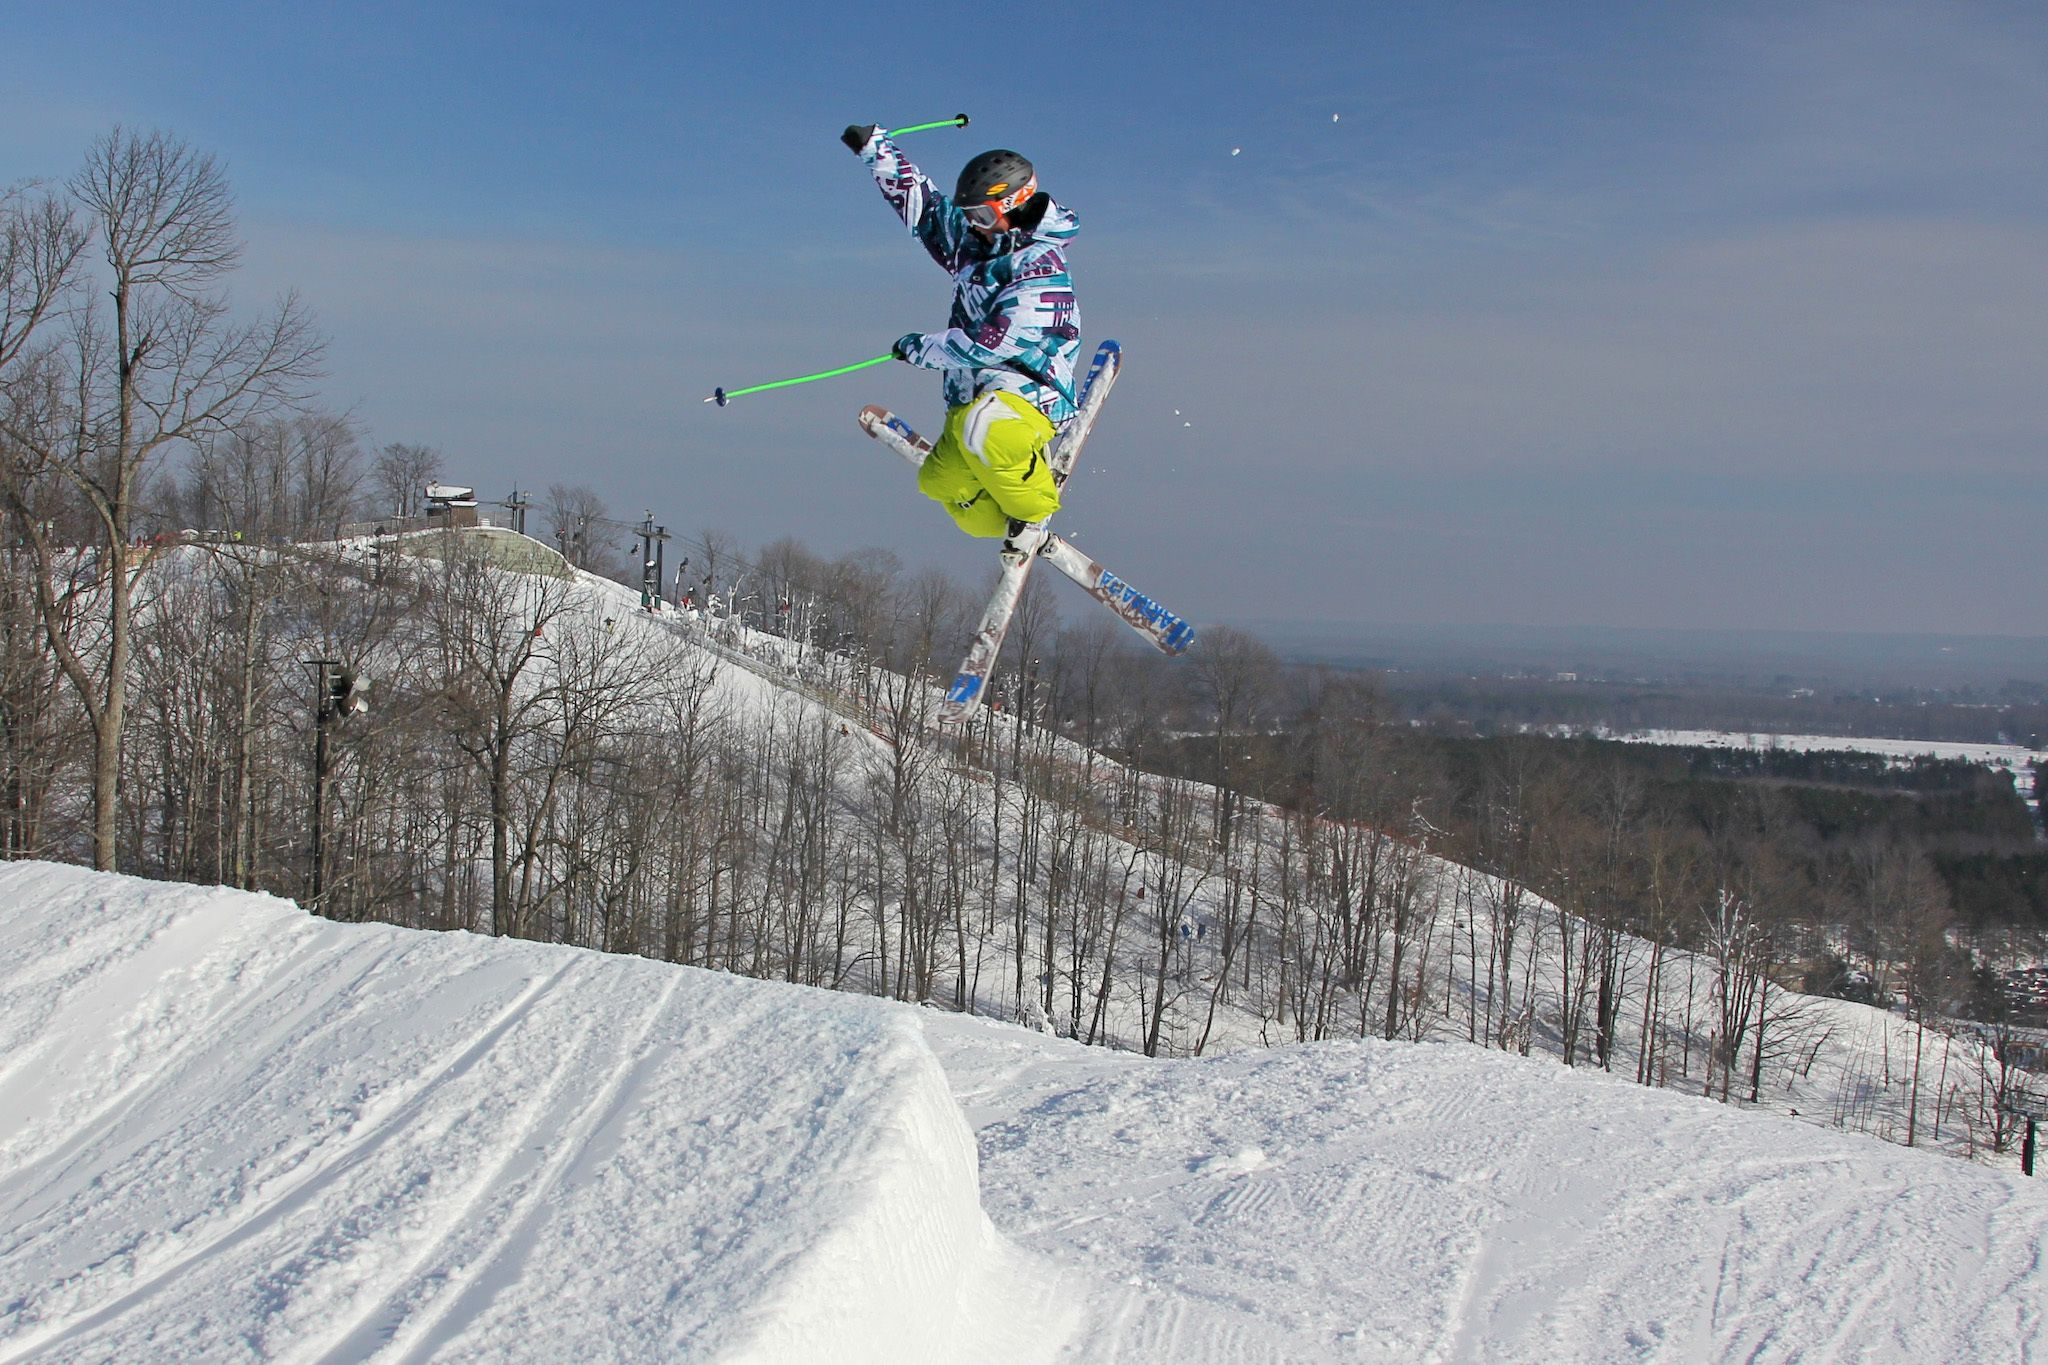 hit the slopes at the best snowboarding and skiing resorts near